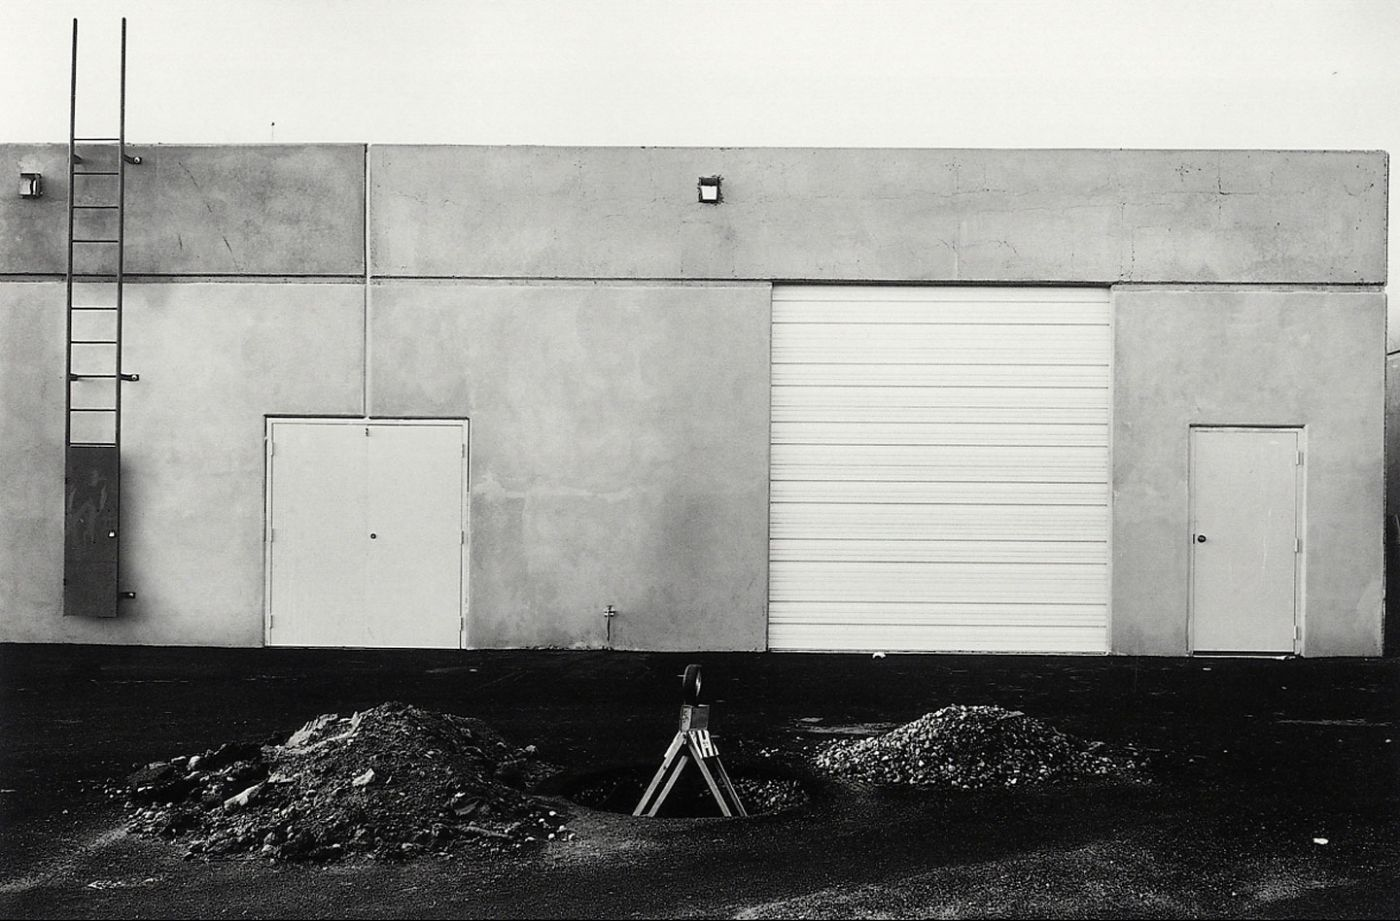 Lewis Baltz: New Industrial Parks Near Irvine, California [SIGNED]